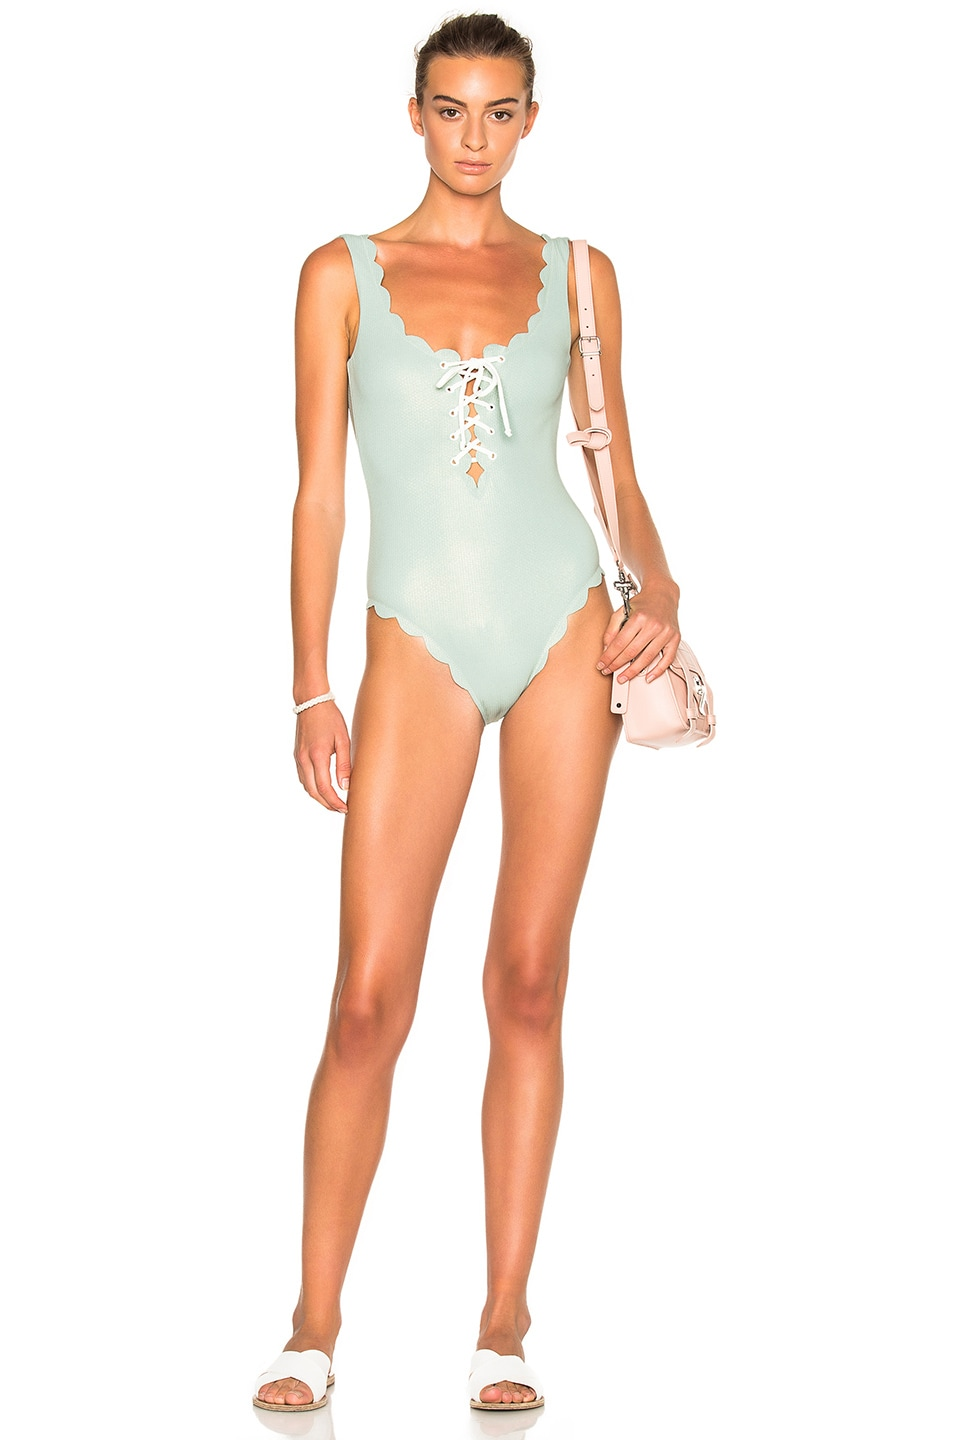 38dc2ef961fa5 Image 1 of Marysia Swim FWRD Exclusive Palm Springs Lace Up Swimsuit in  Pale Blue